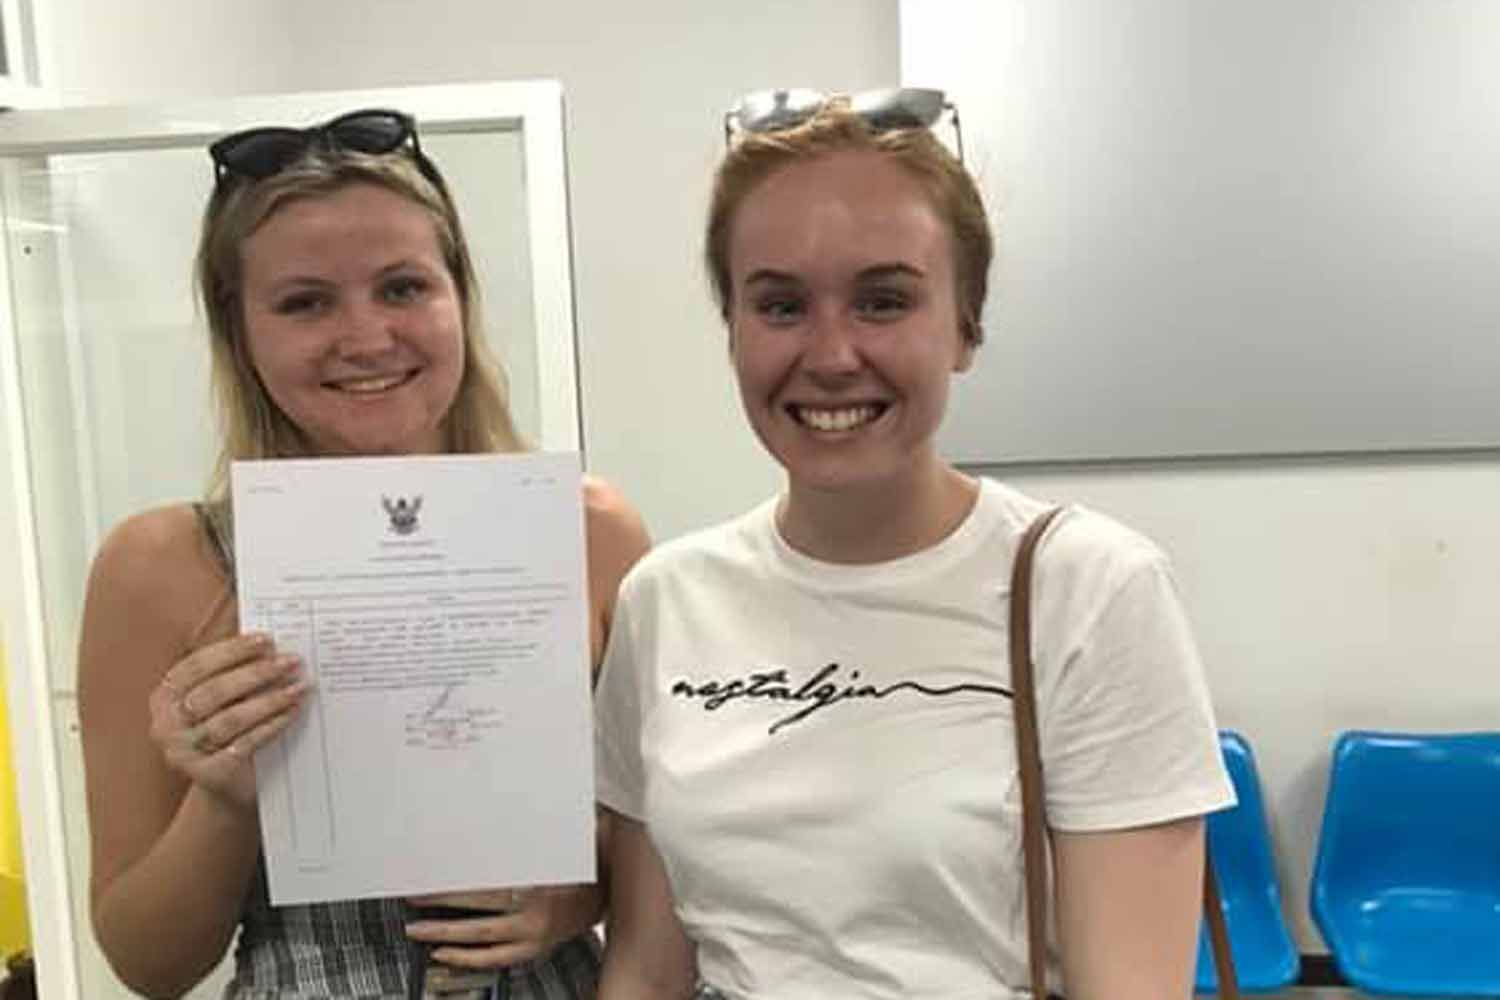 The two Australian tourists pose with their written complaint about being overcharged by a passenger van for a trip from Phuket airport to a Kata area hotel, at Karon police station in Phuket on Wednesday evening. (Photo supplied)